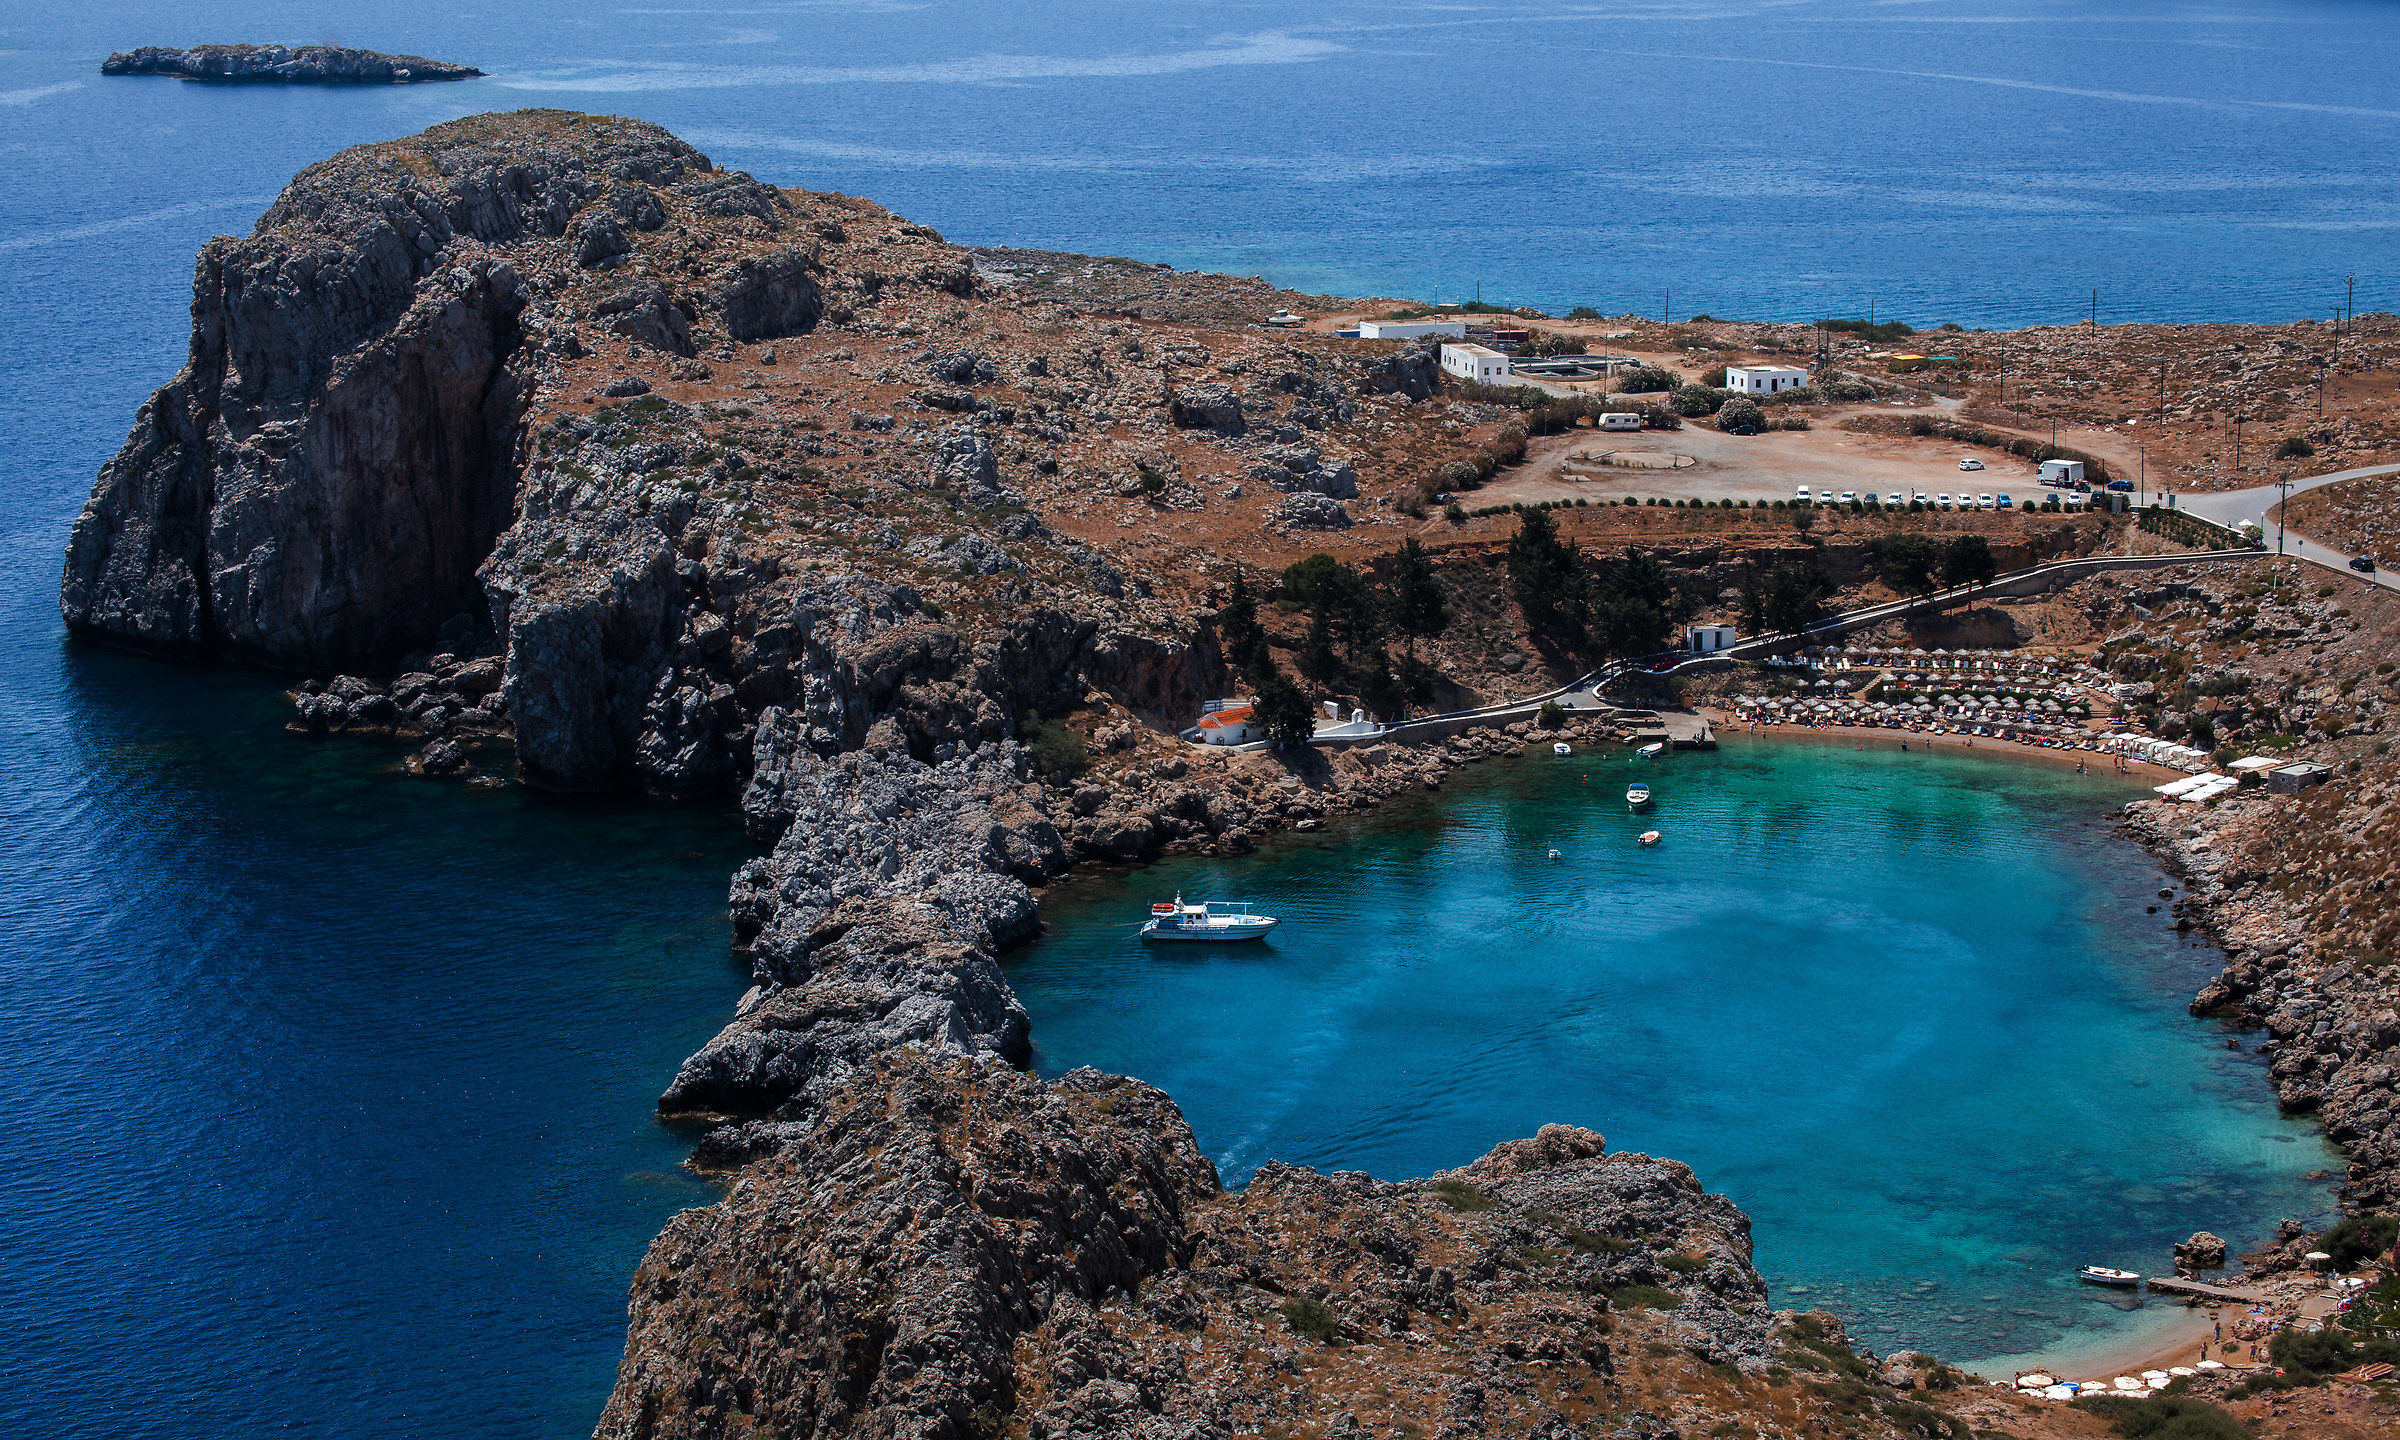 ST. Paul's bay - lindos...